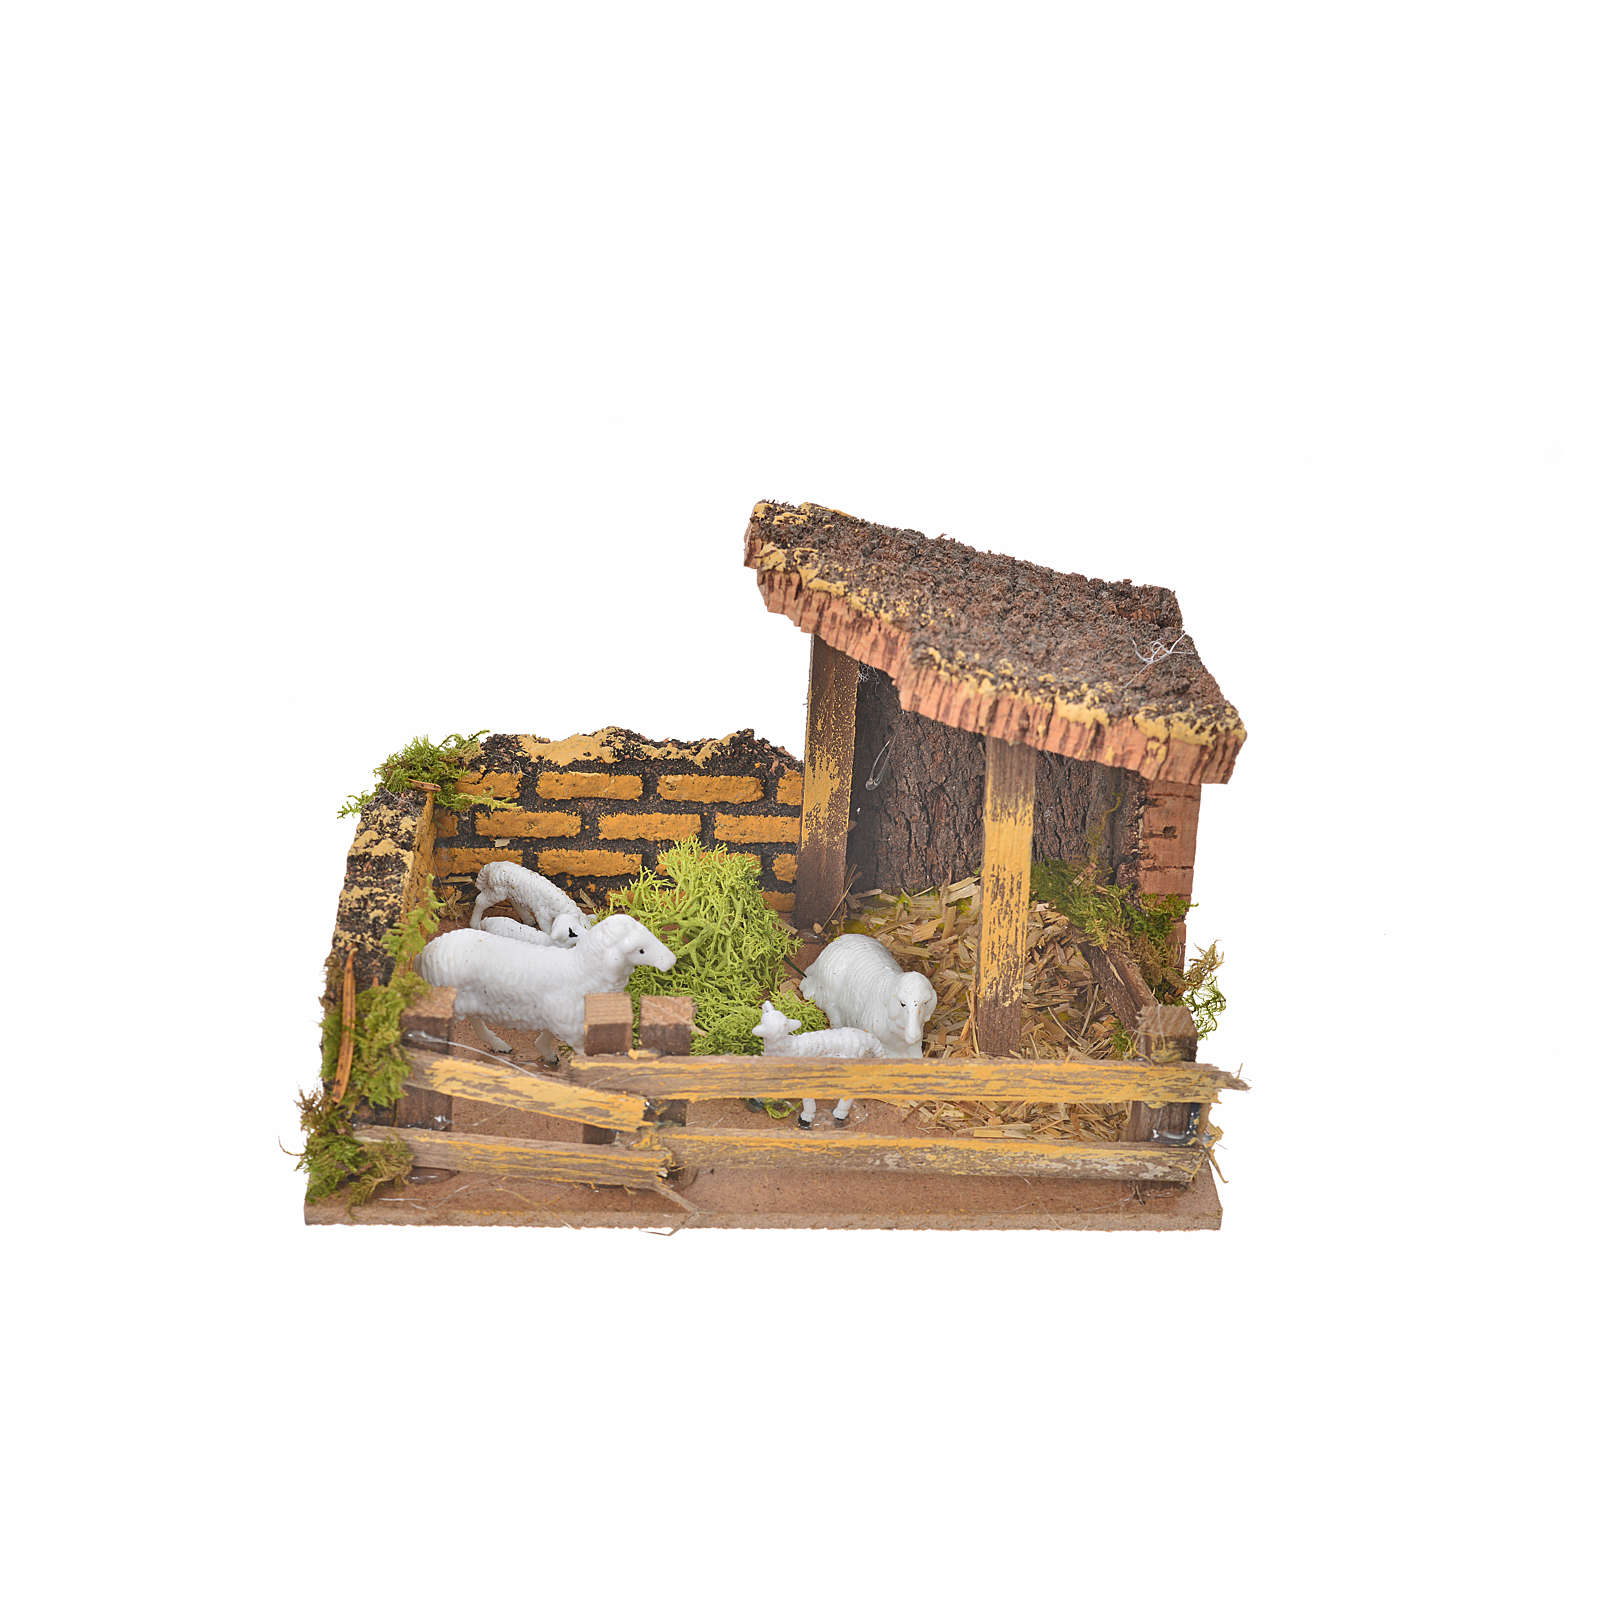 Nativity setting, fence with sheep 11x15x10cm 4